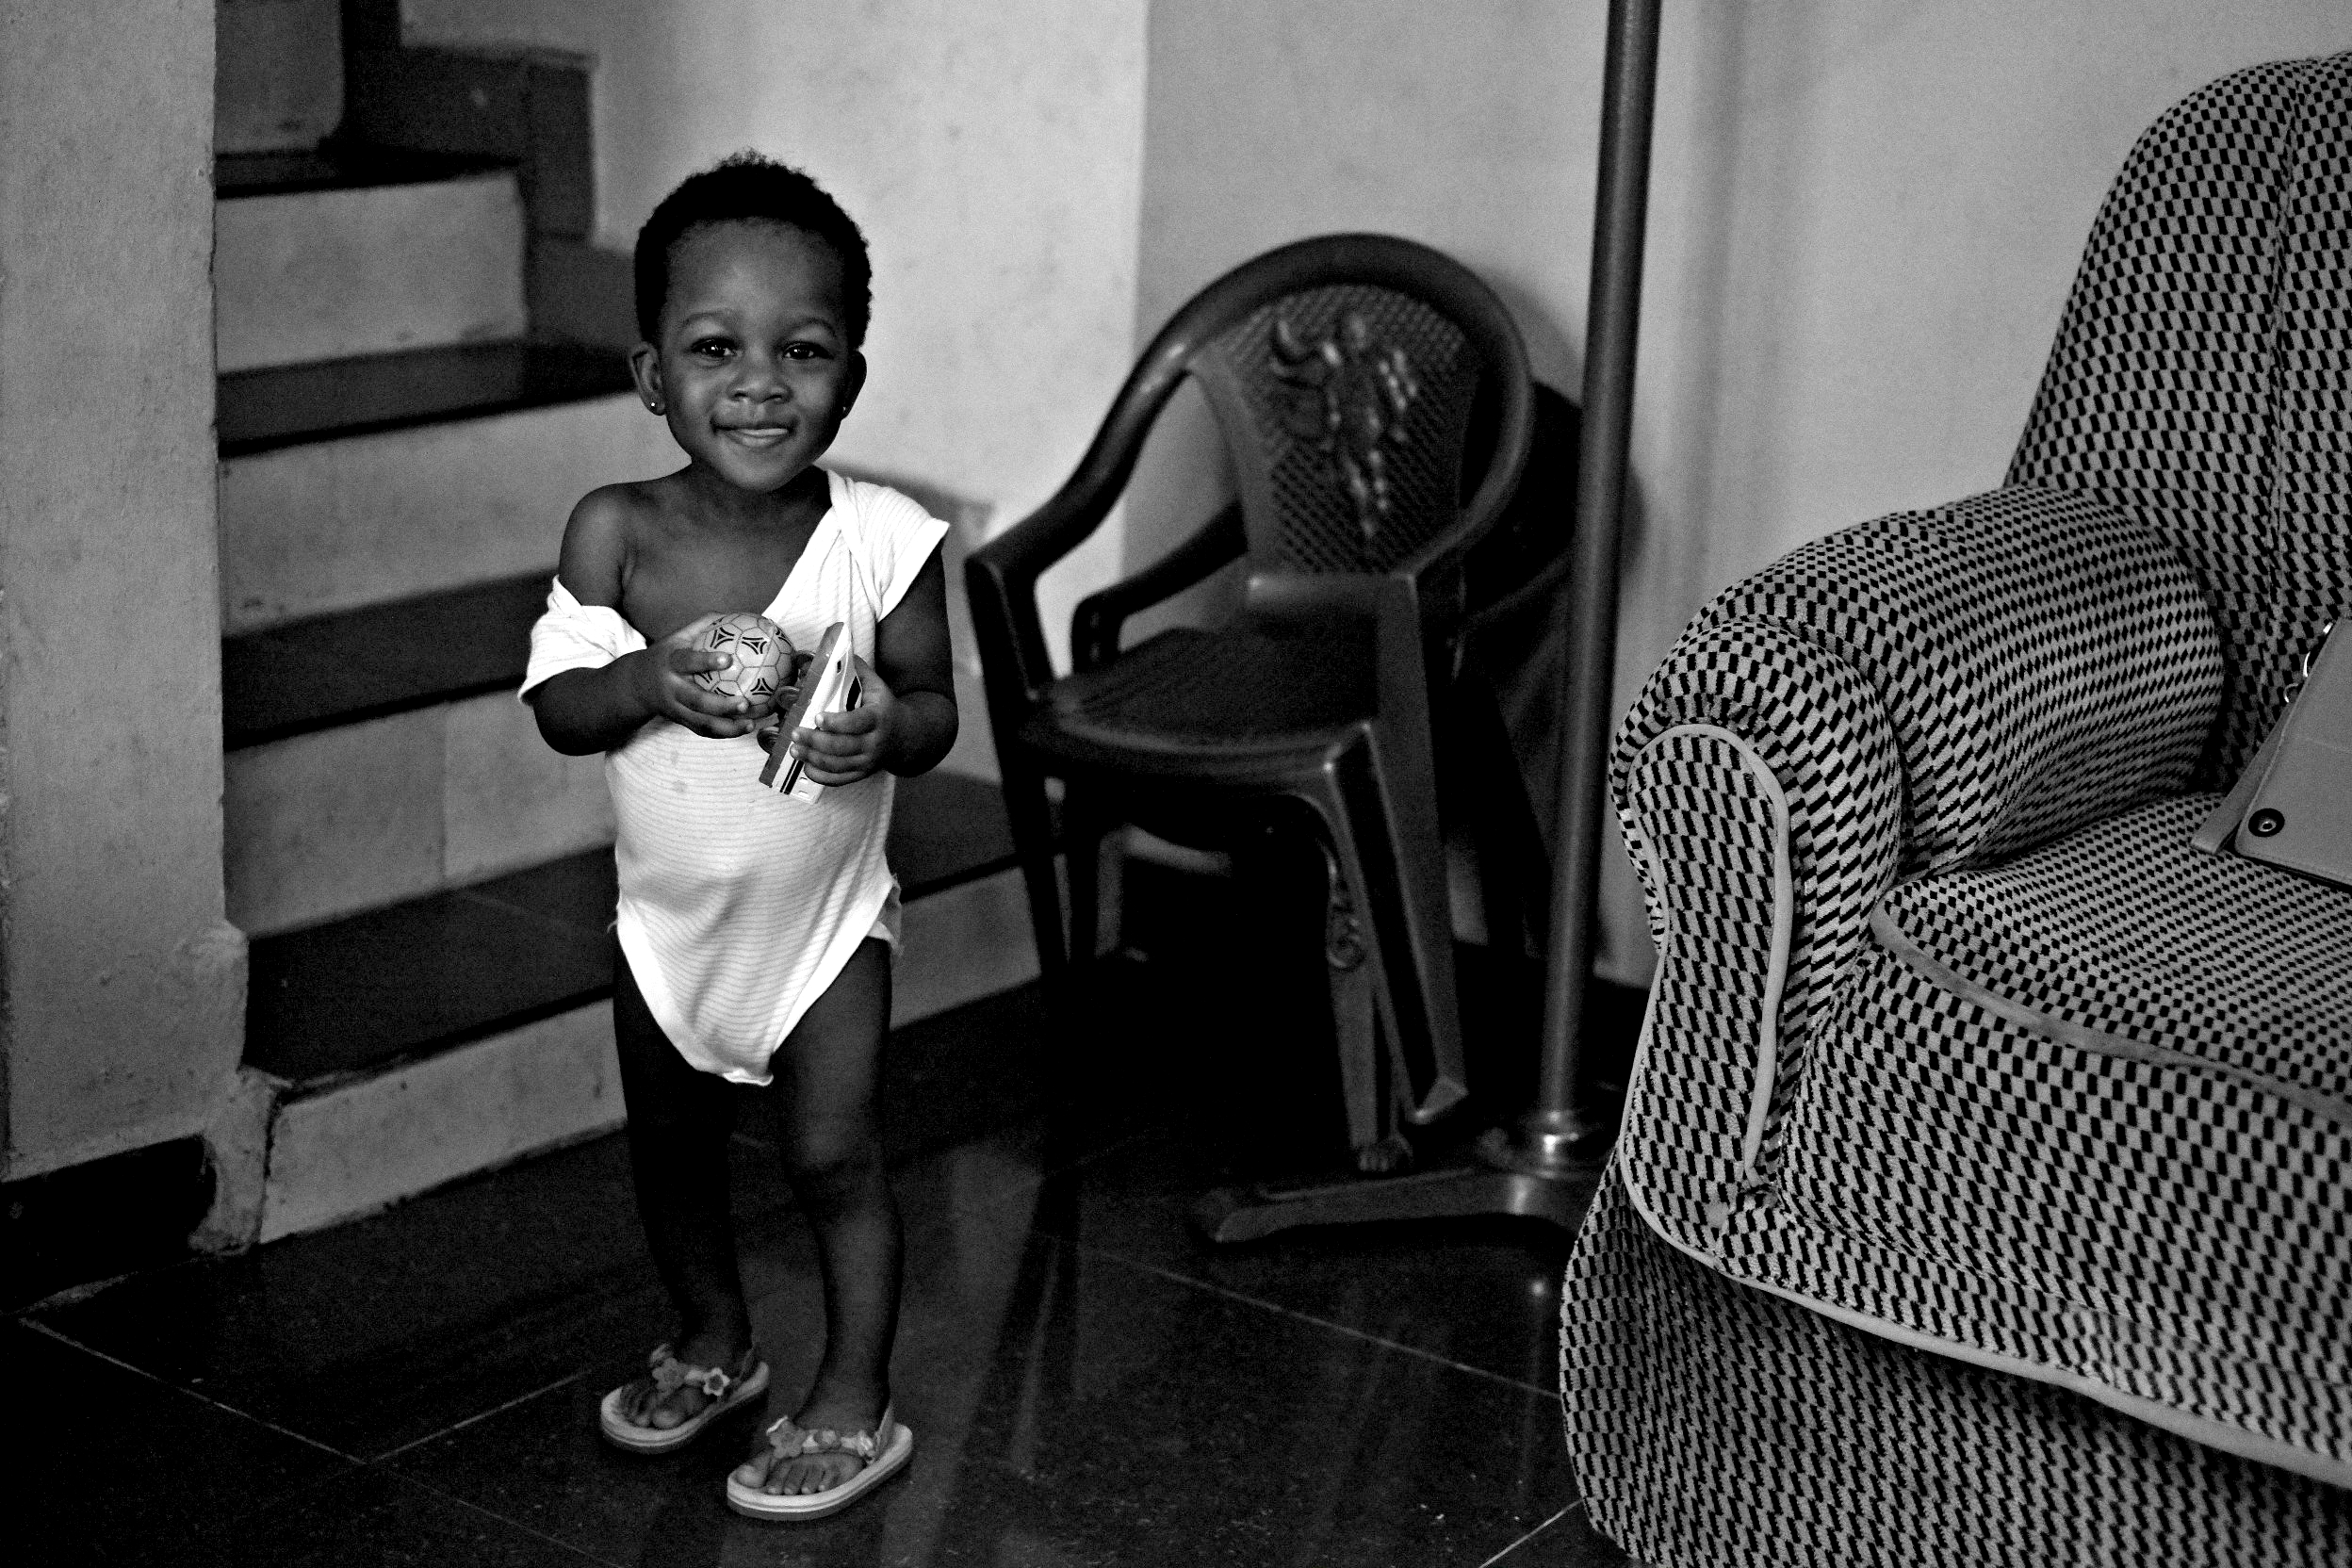 Paul's daughter plays with a toy shinkansen at home in Nigeria in 2014.